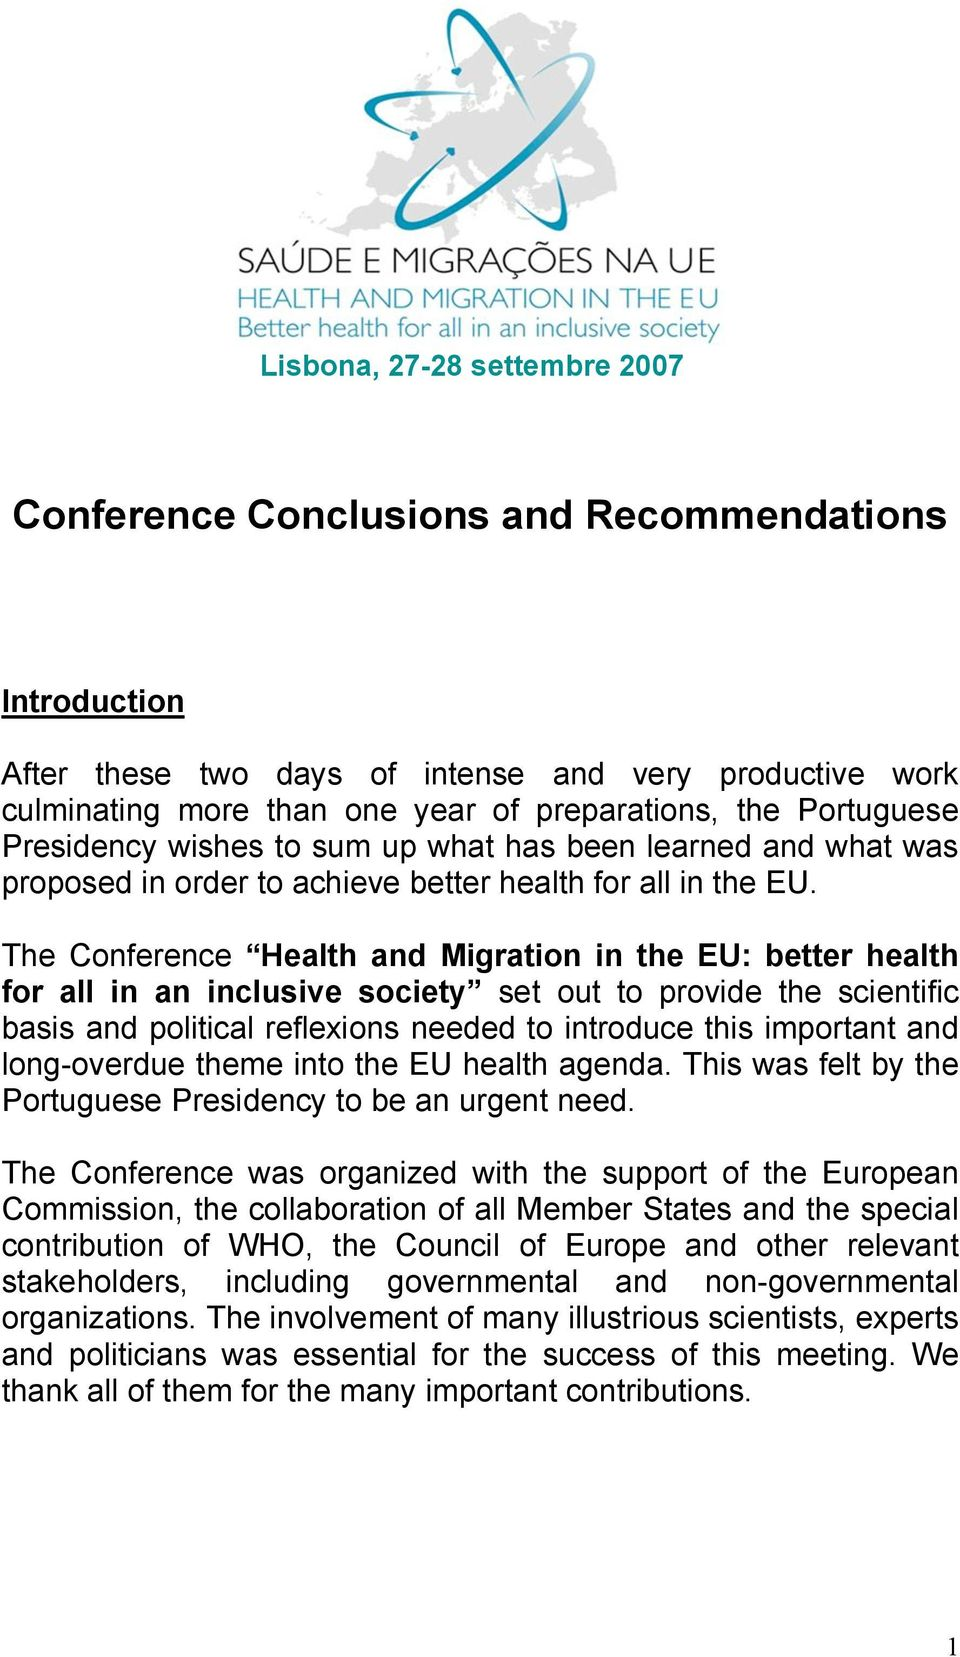 The Conference Health and Migration in the EU: better health for all in an inclusive society set out to provide the scientific basis and political reflexions needed to introduce this important and